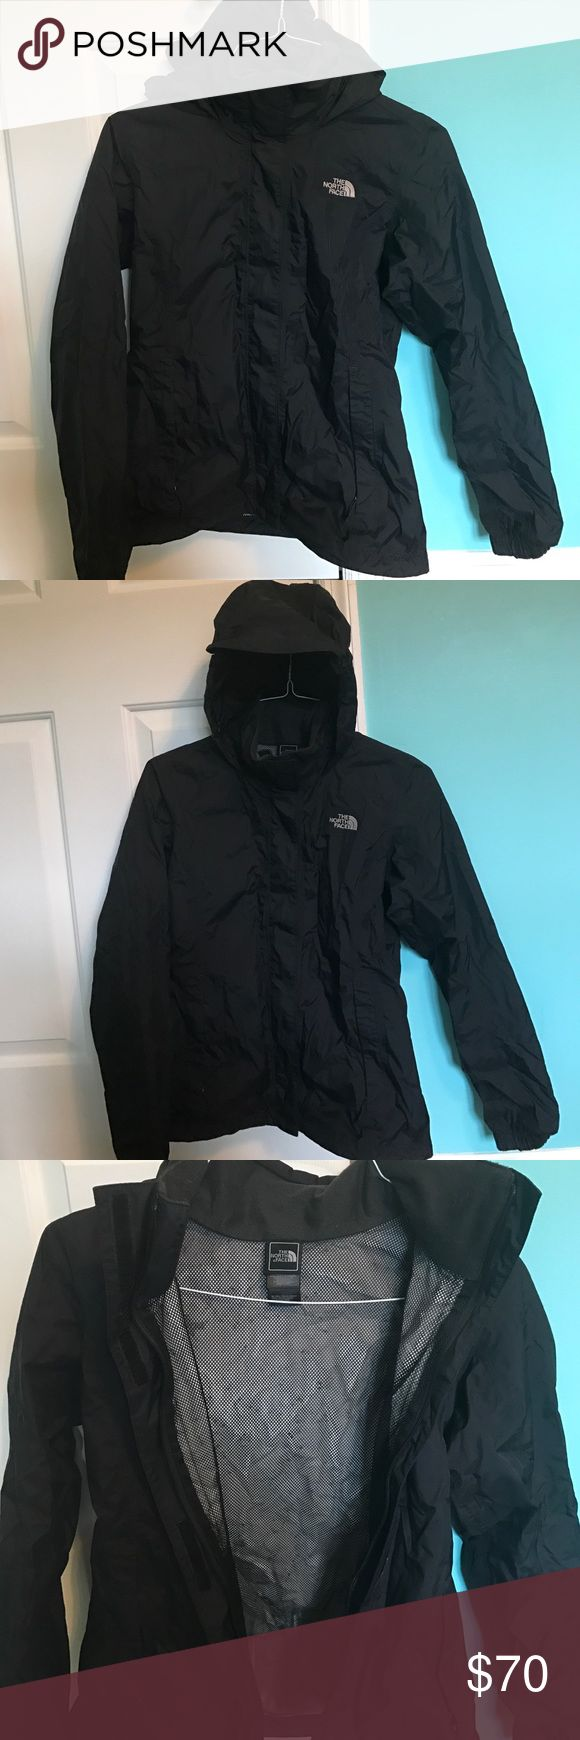 The NorthFace women's rain jacket Black women's rain jacket, size small, attached hood, pockets with zippers, zipper closure with Velcro over it. Lightly worn and in perfect condition The North Face Jackets & Coats Utility Jackets